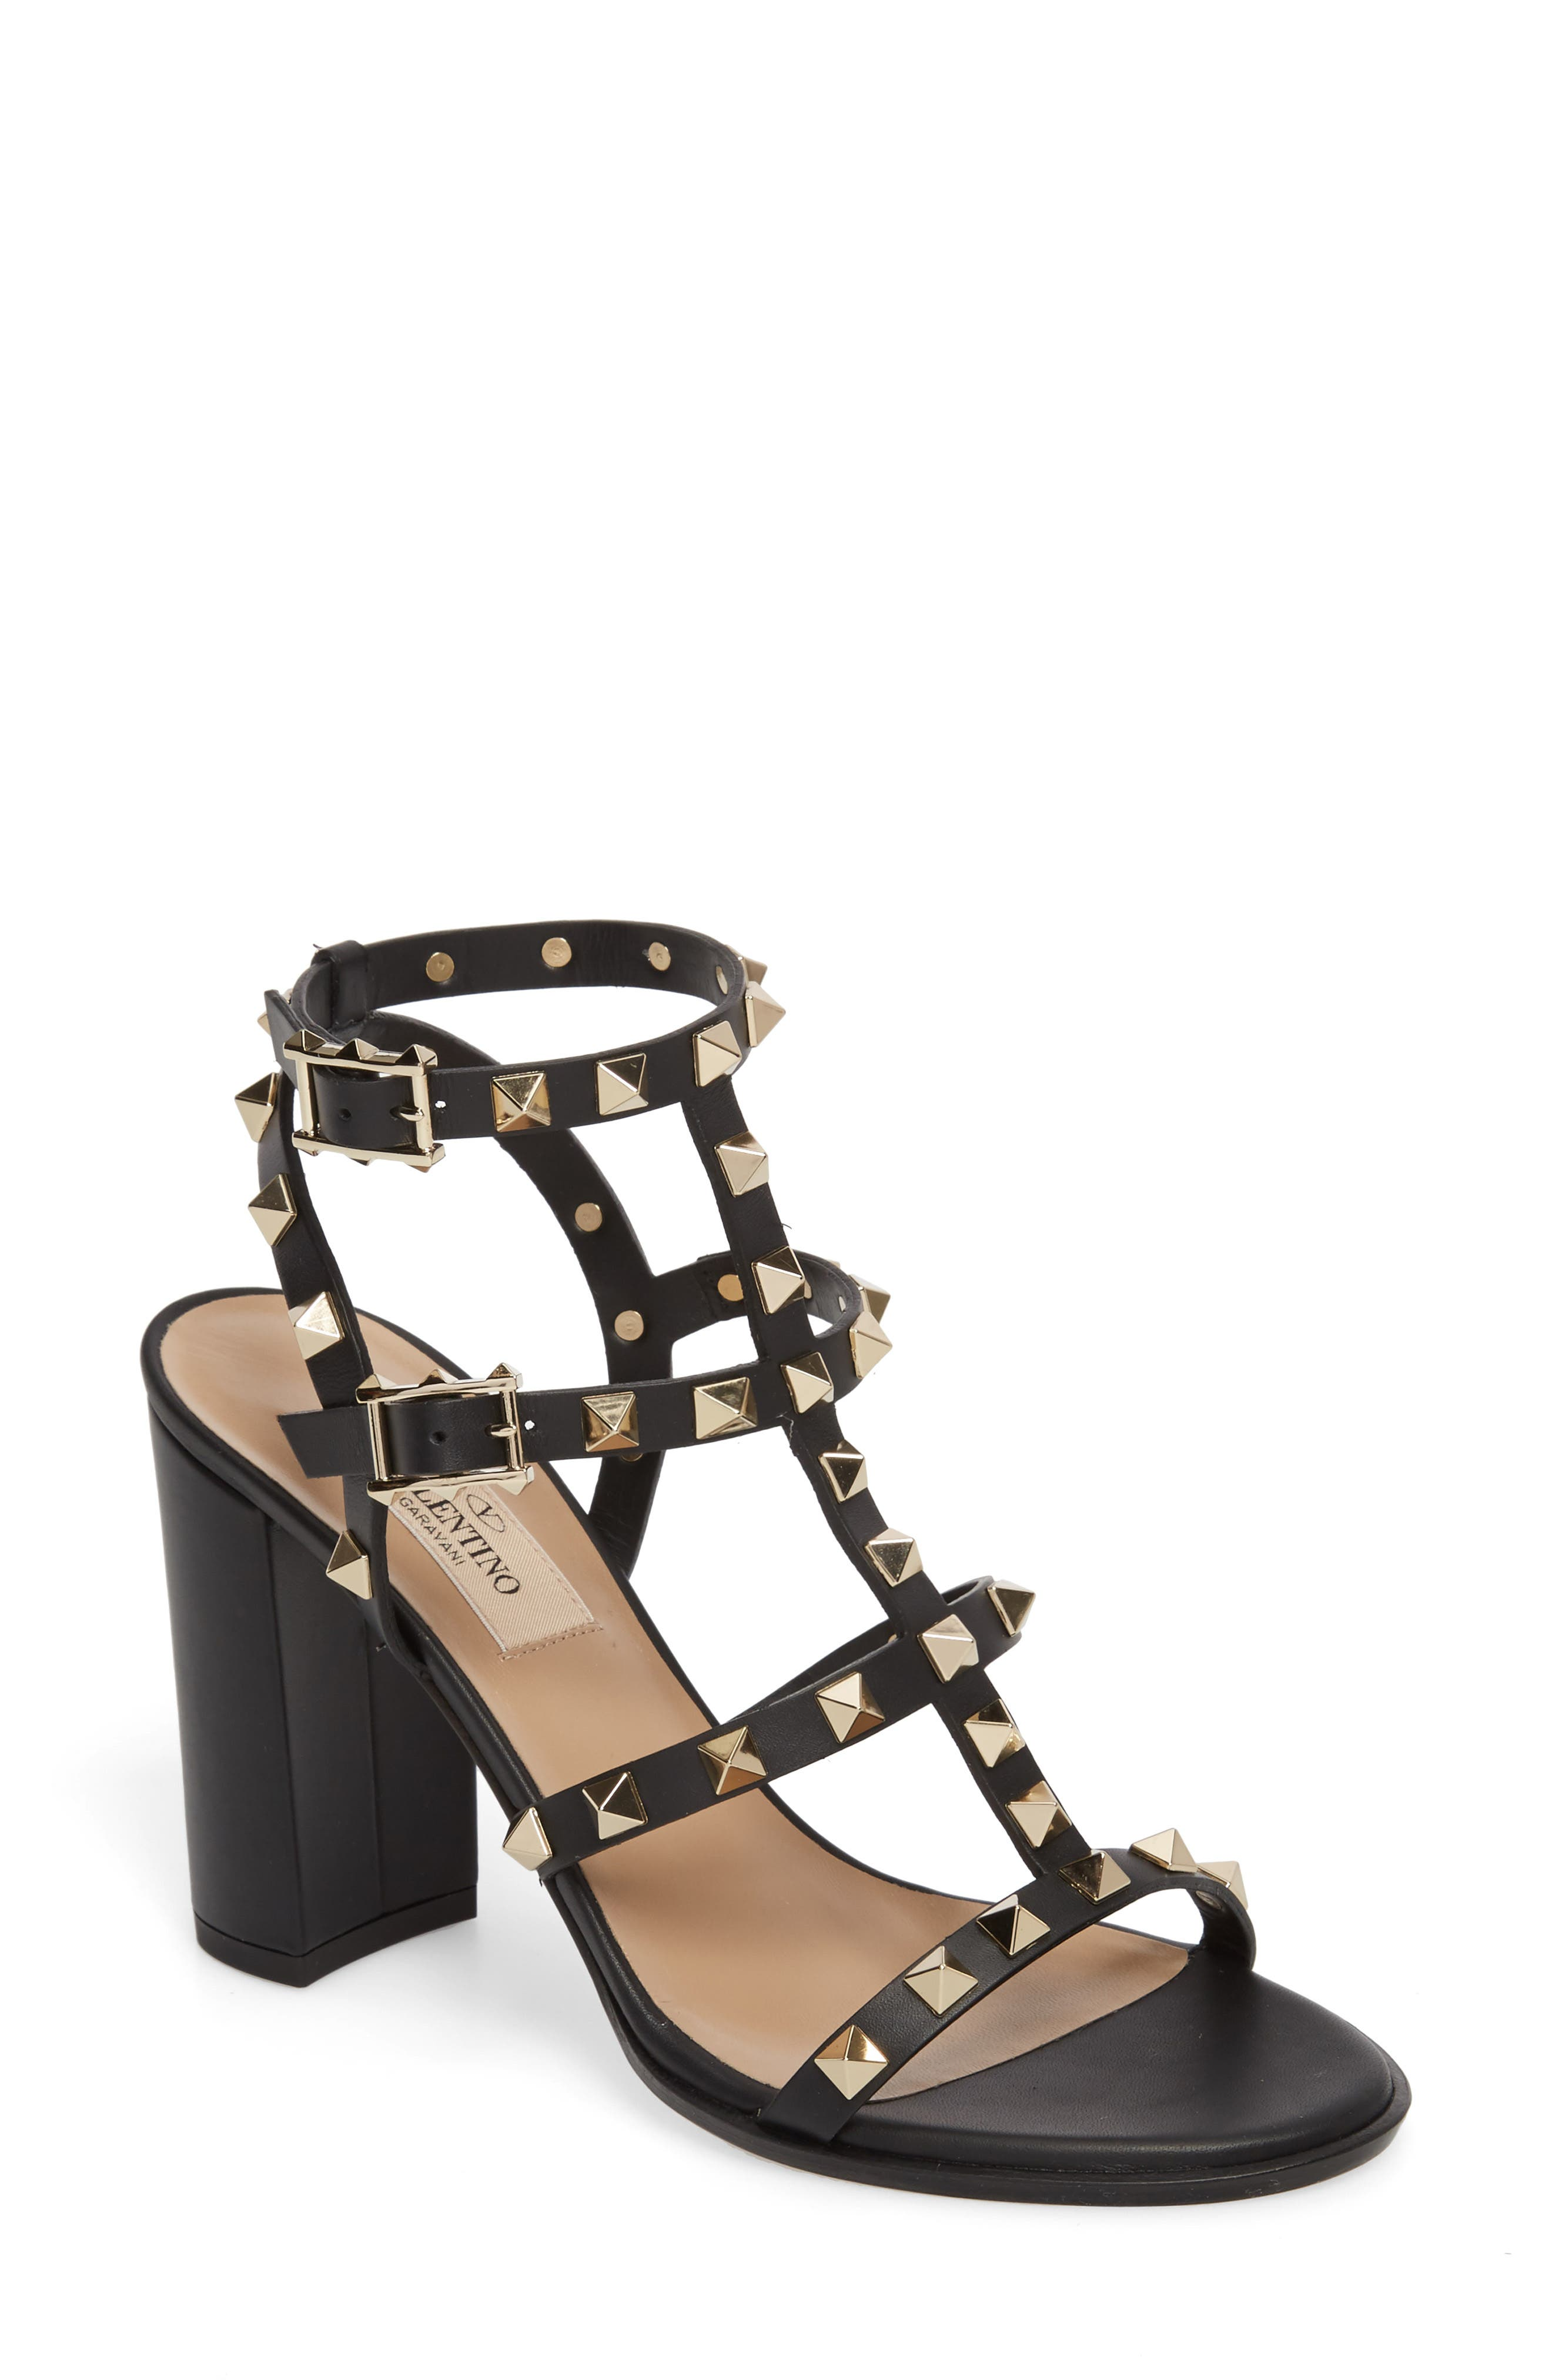 Alternate Image 1 Selected - VALENTINO GARAVANI 'Rockstud' T-Strap Sandal (Women)